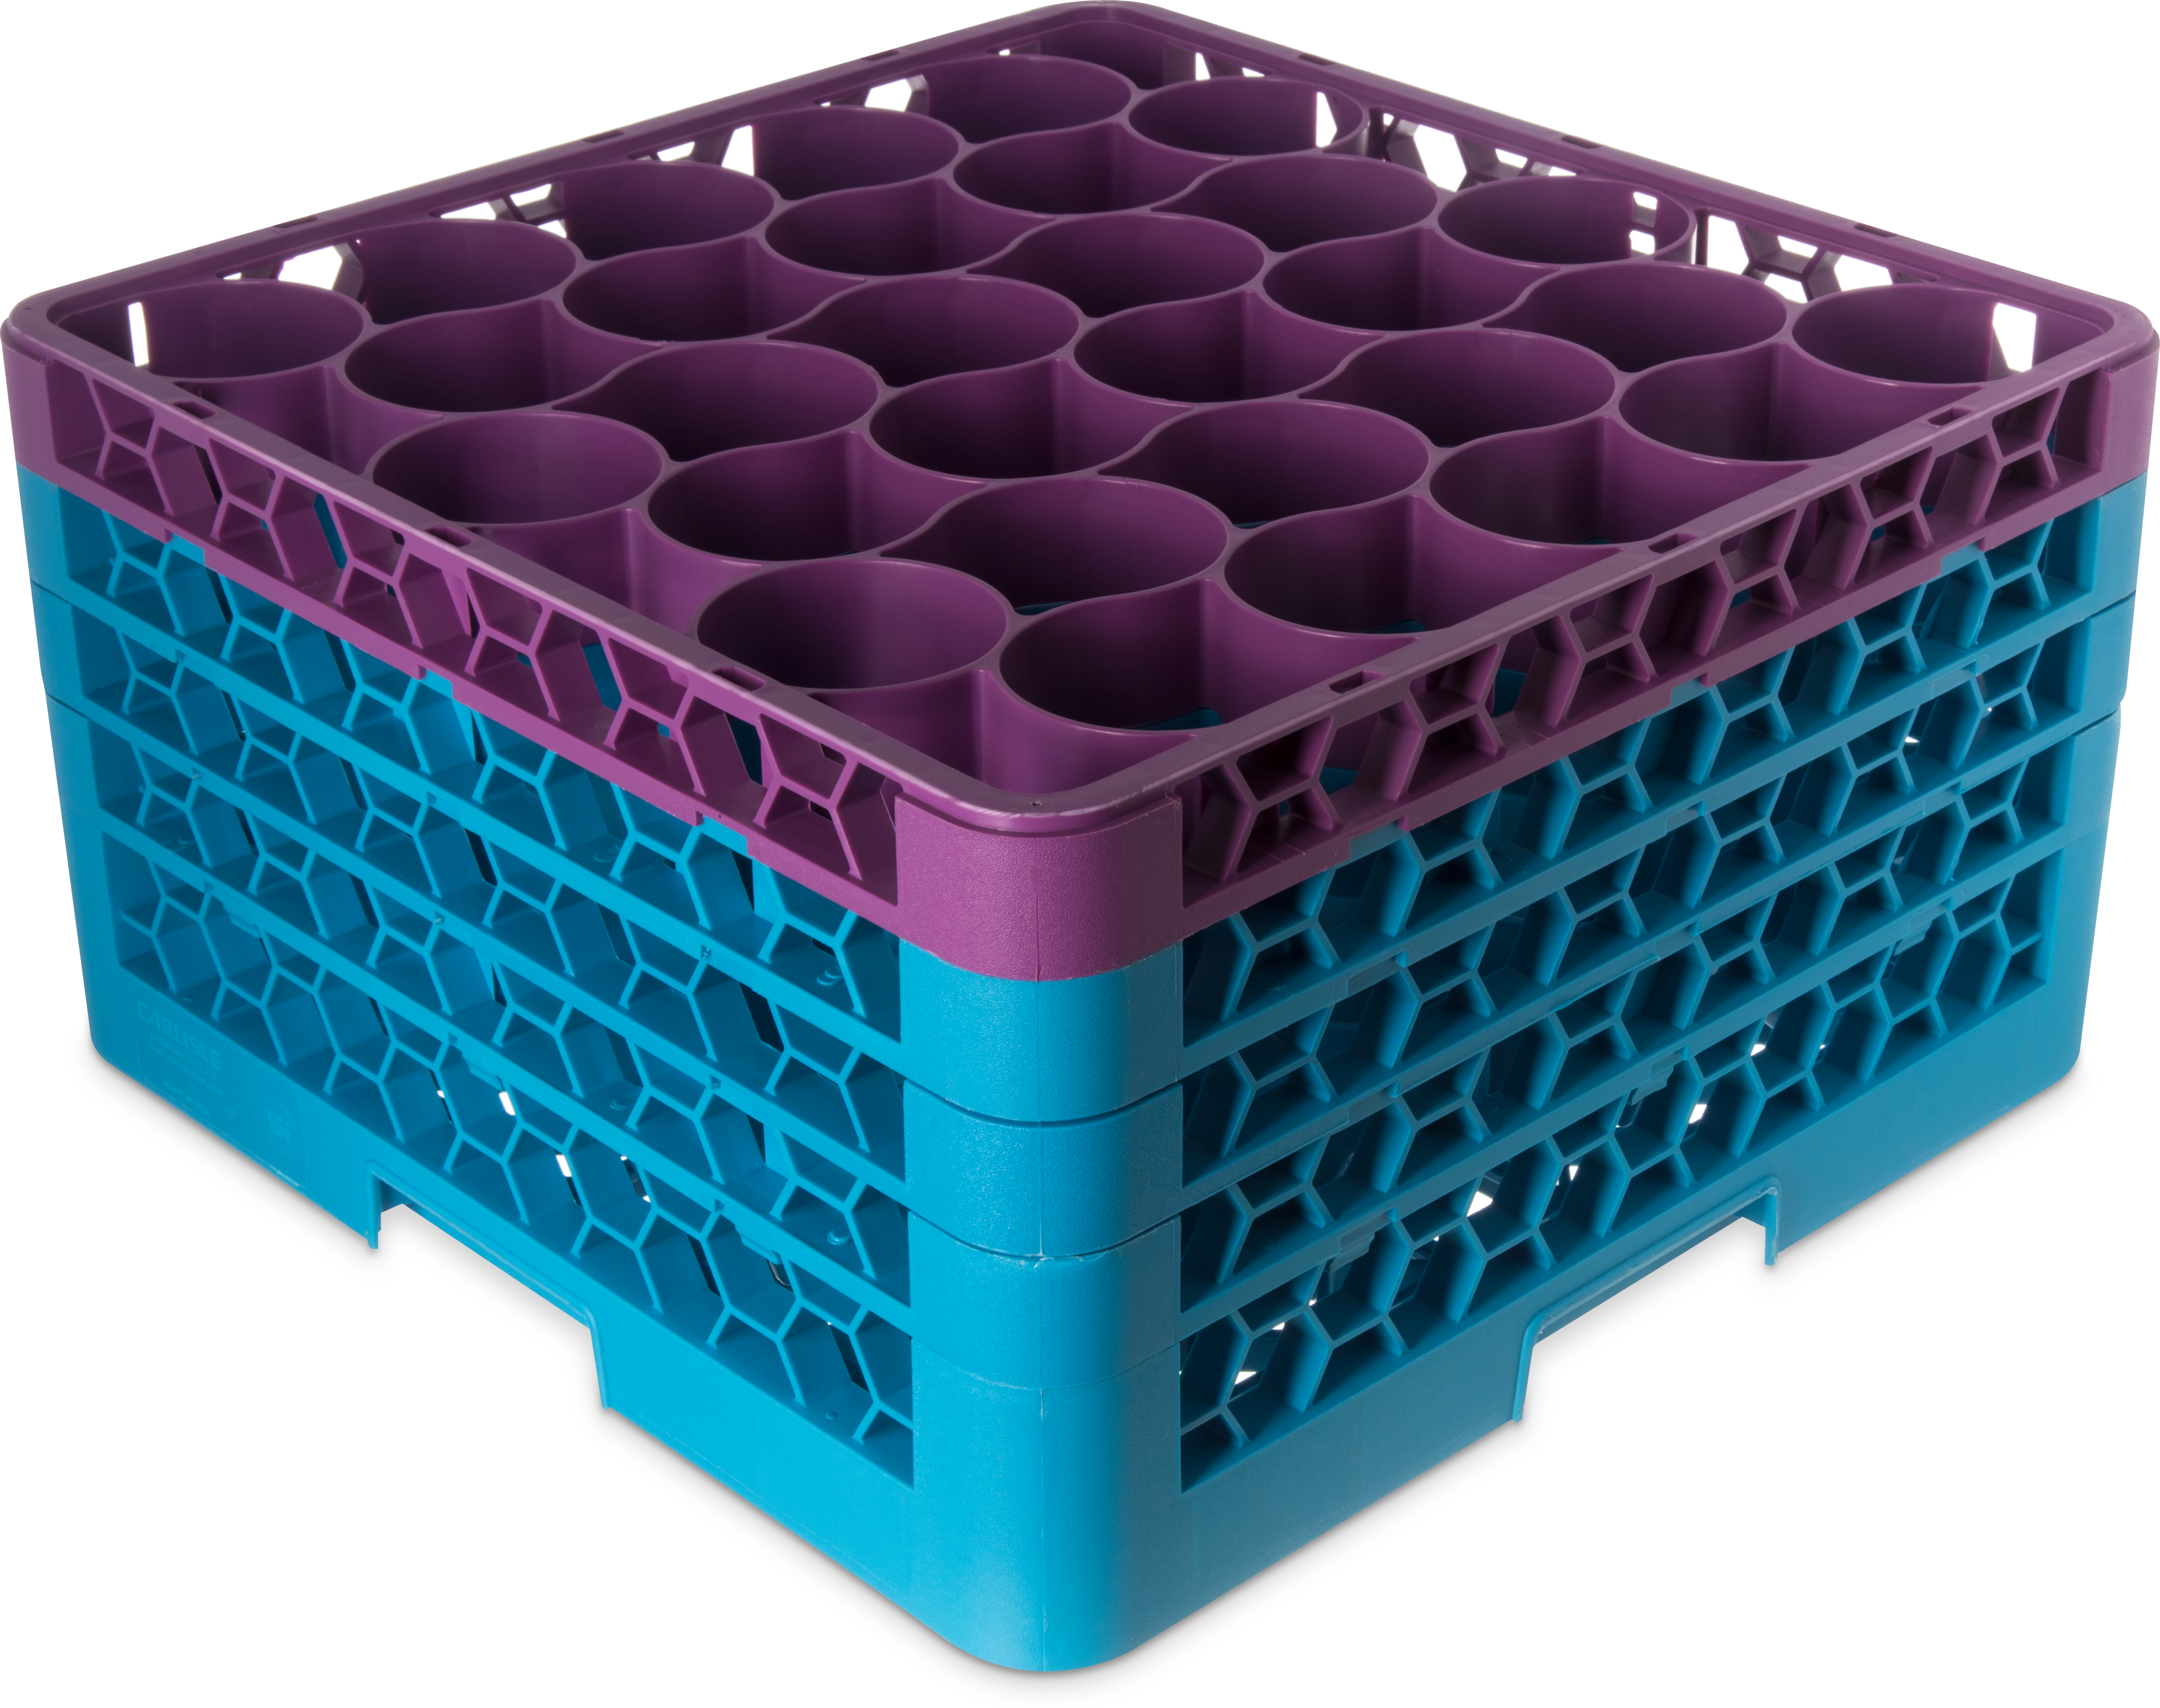 Color-Coded Glass Rack with Three Extenders 30 Compartment (2pk) - Lavender-Carlisle Blue